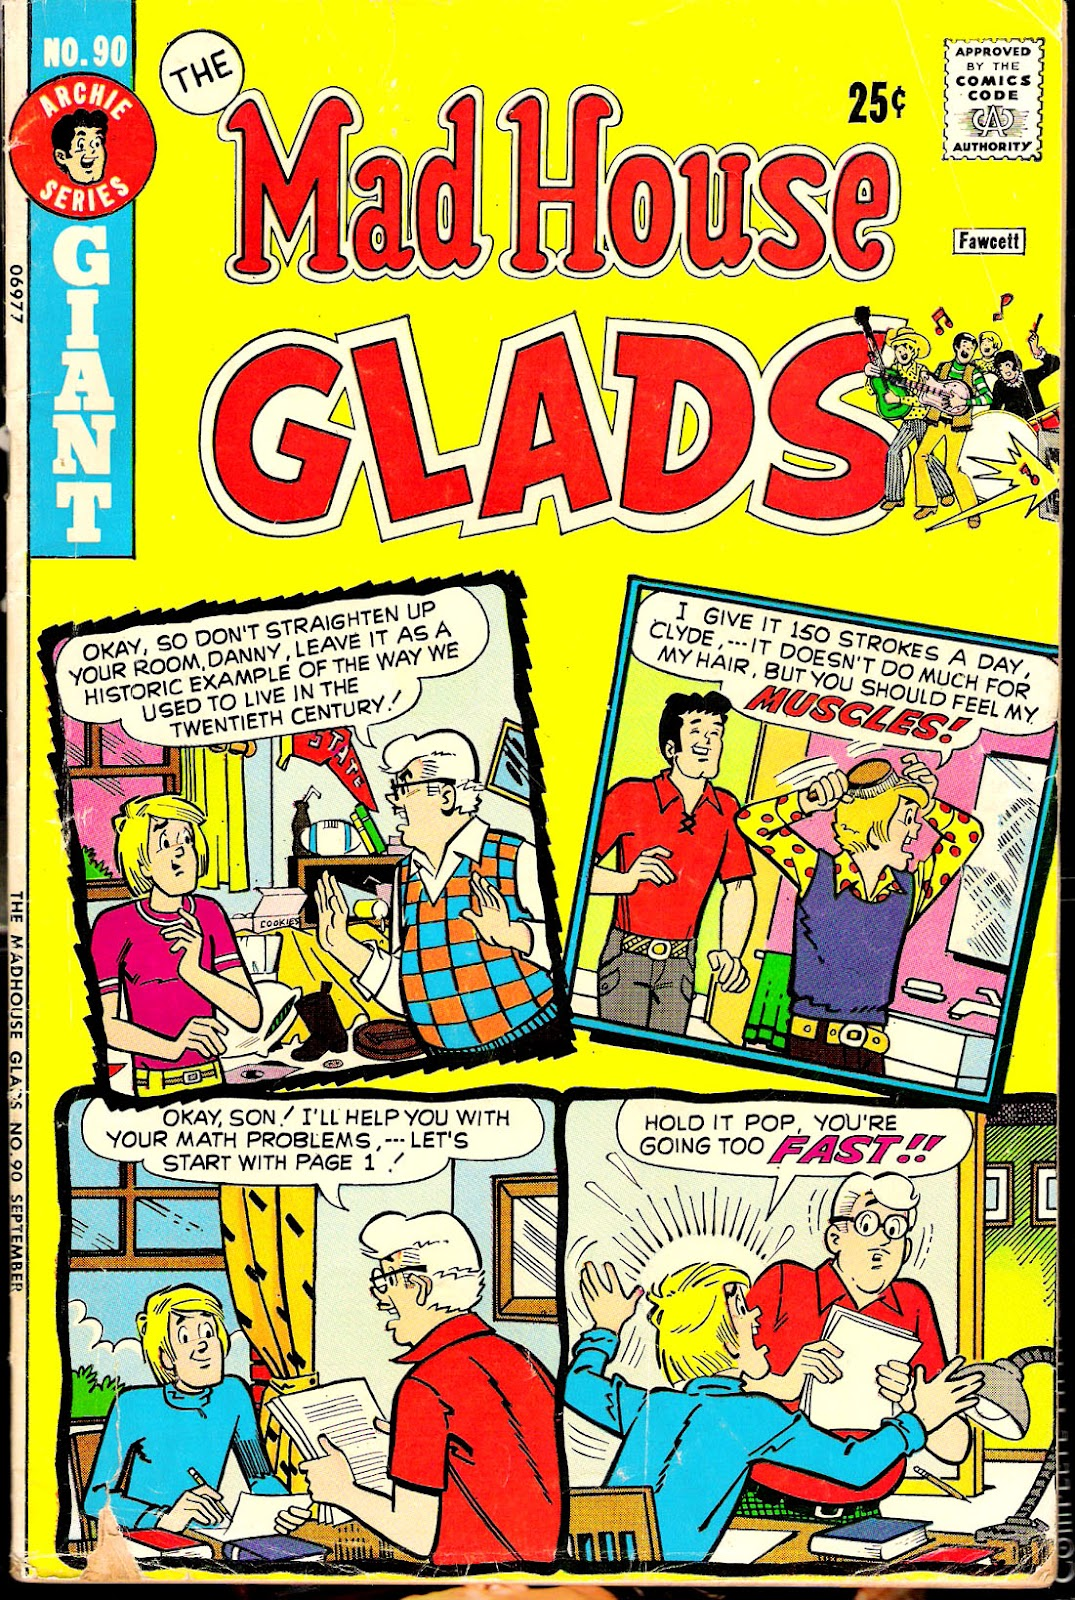 Read online The Mad House Glads comic -  Issue #90 - 1